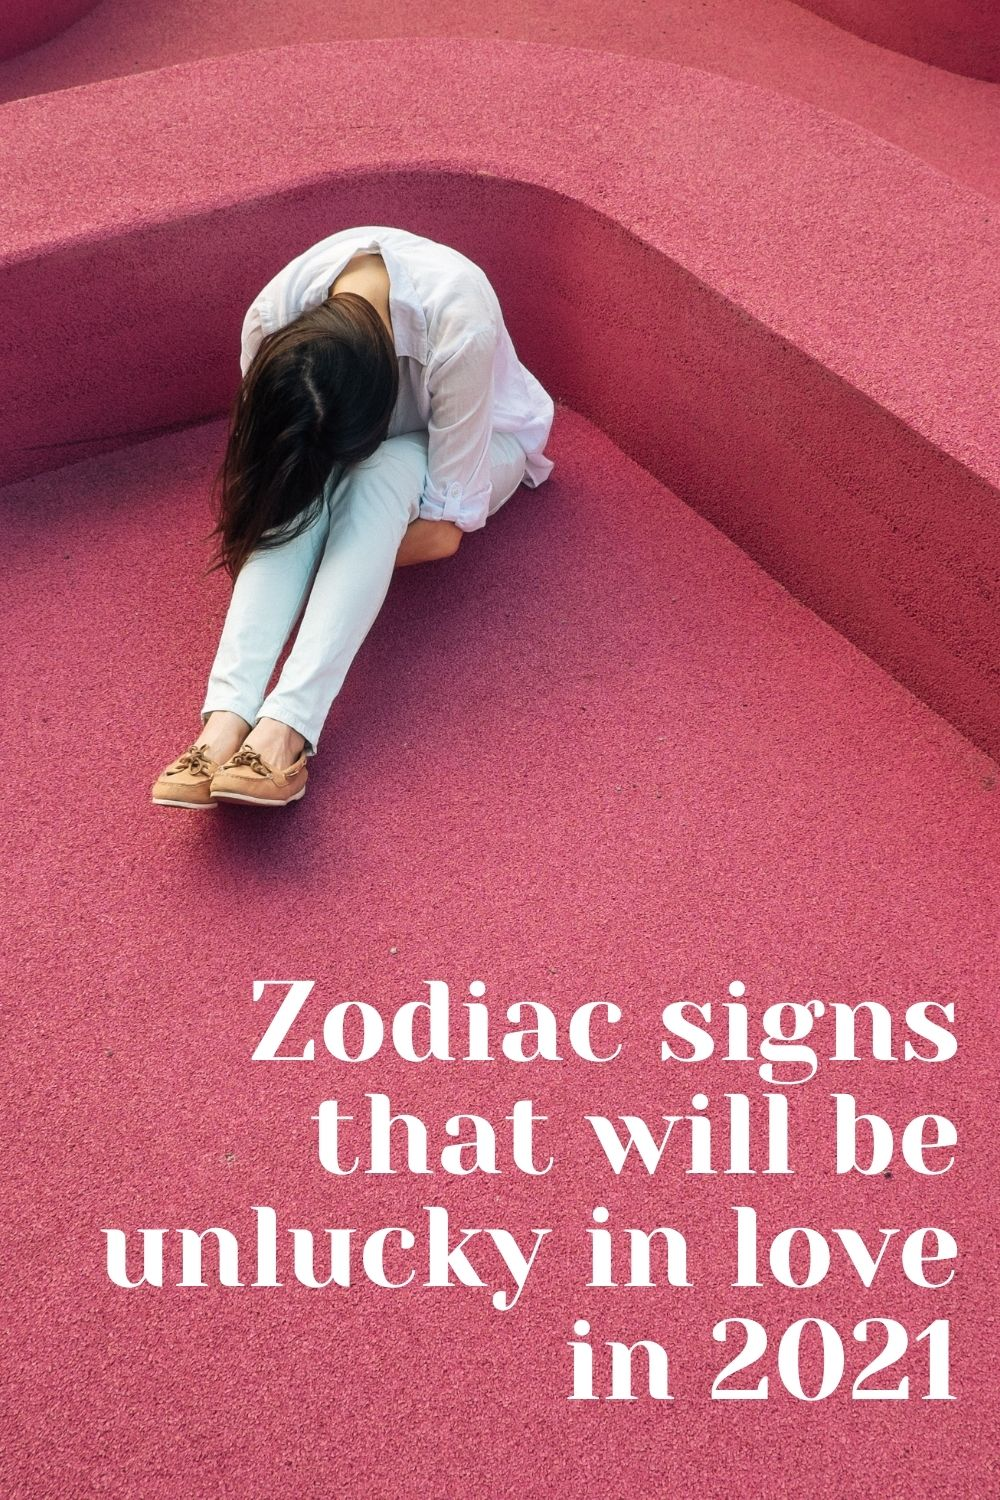 Zodiac signs that will be unlucky in love in 2021